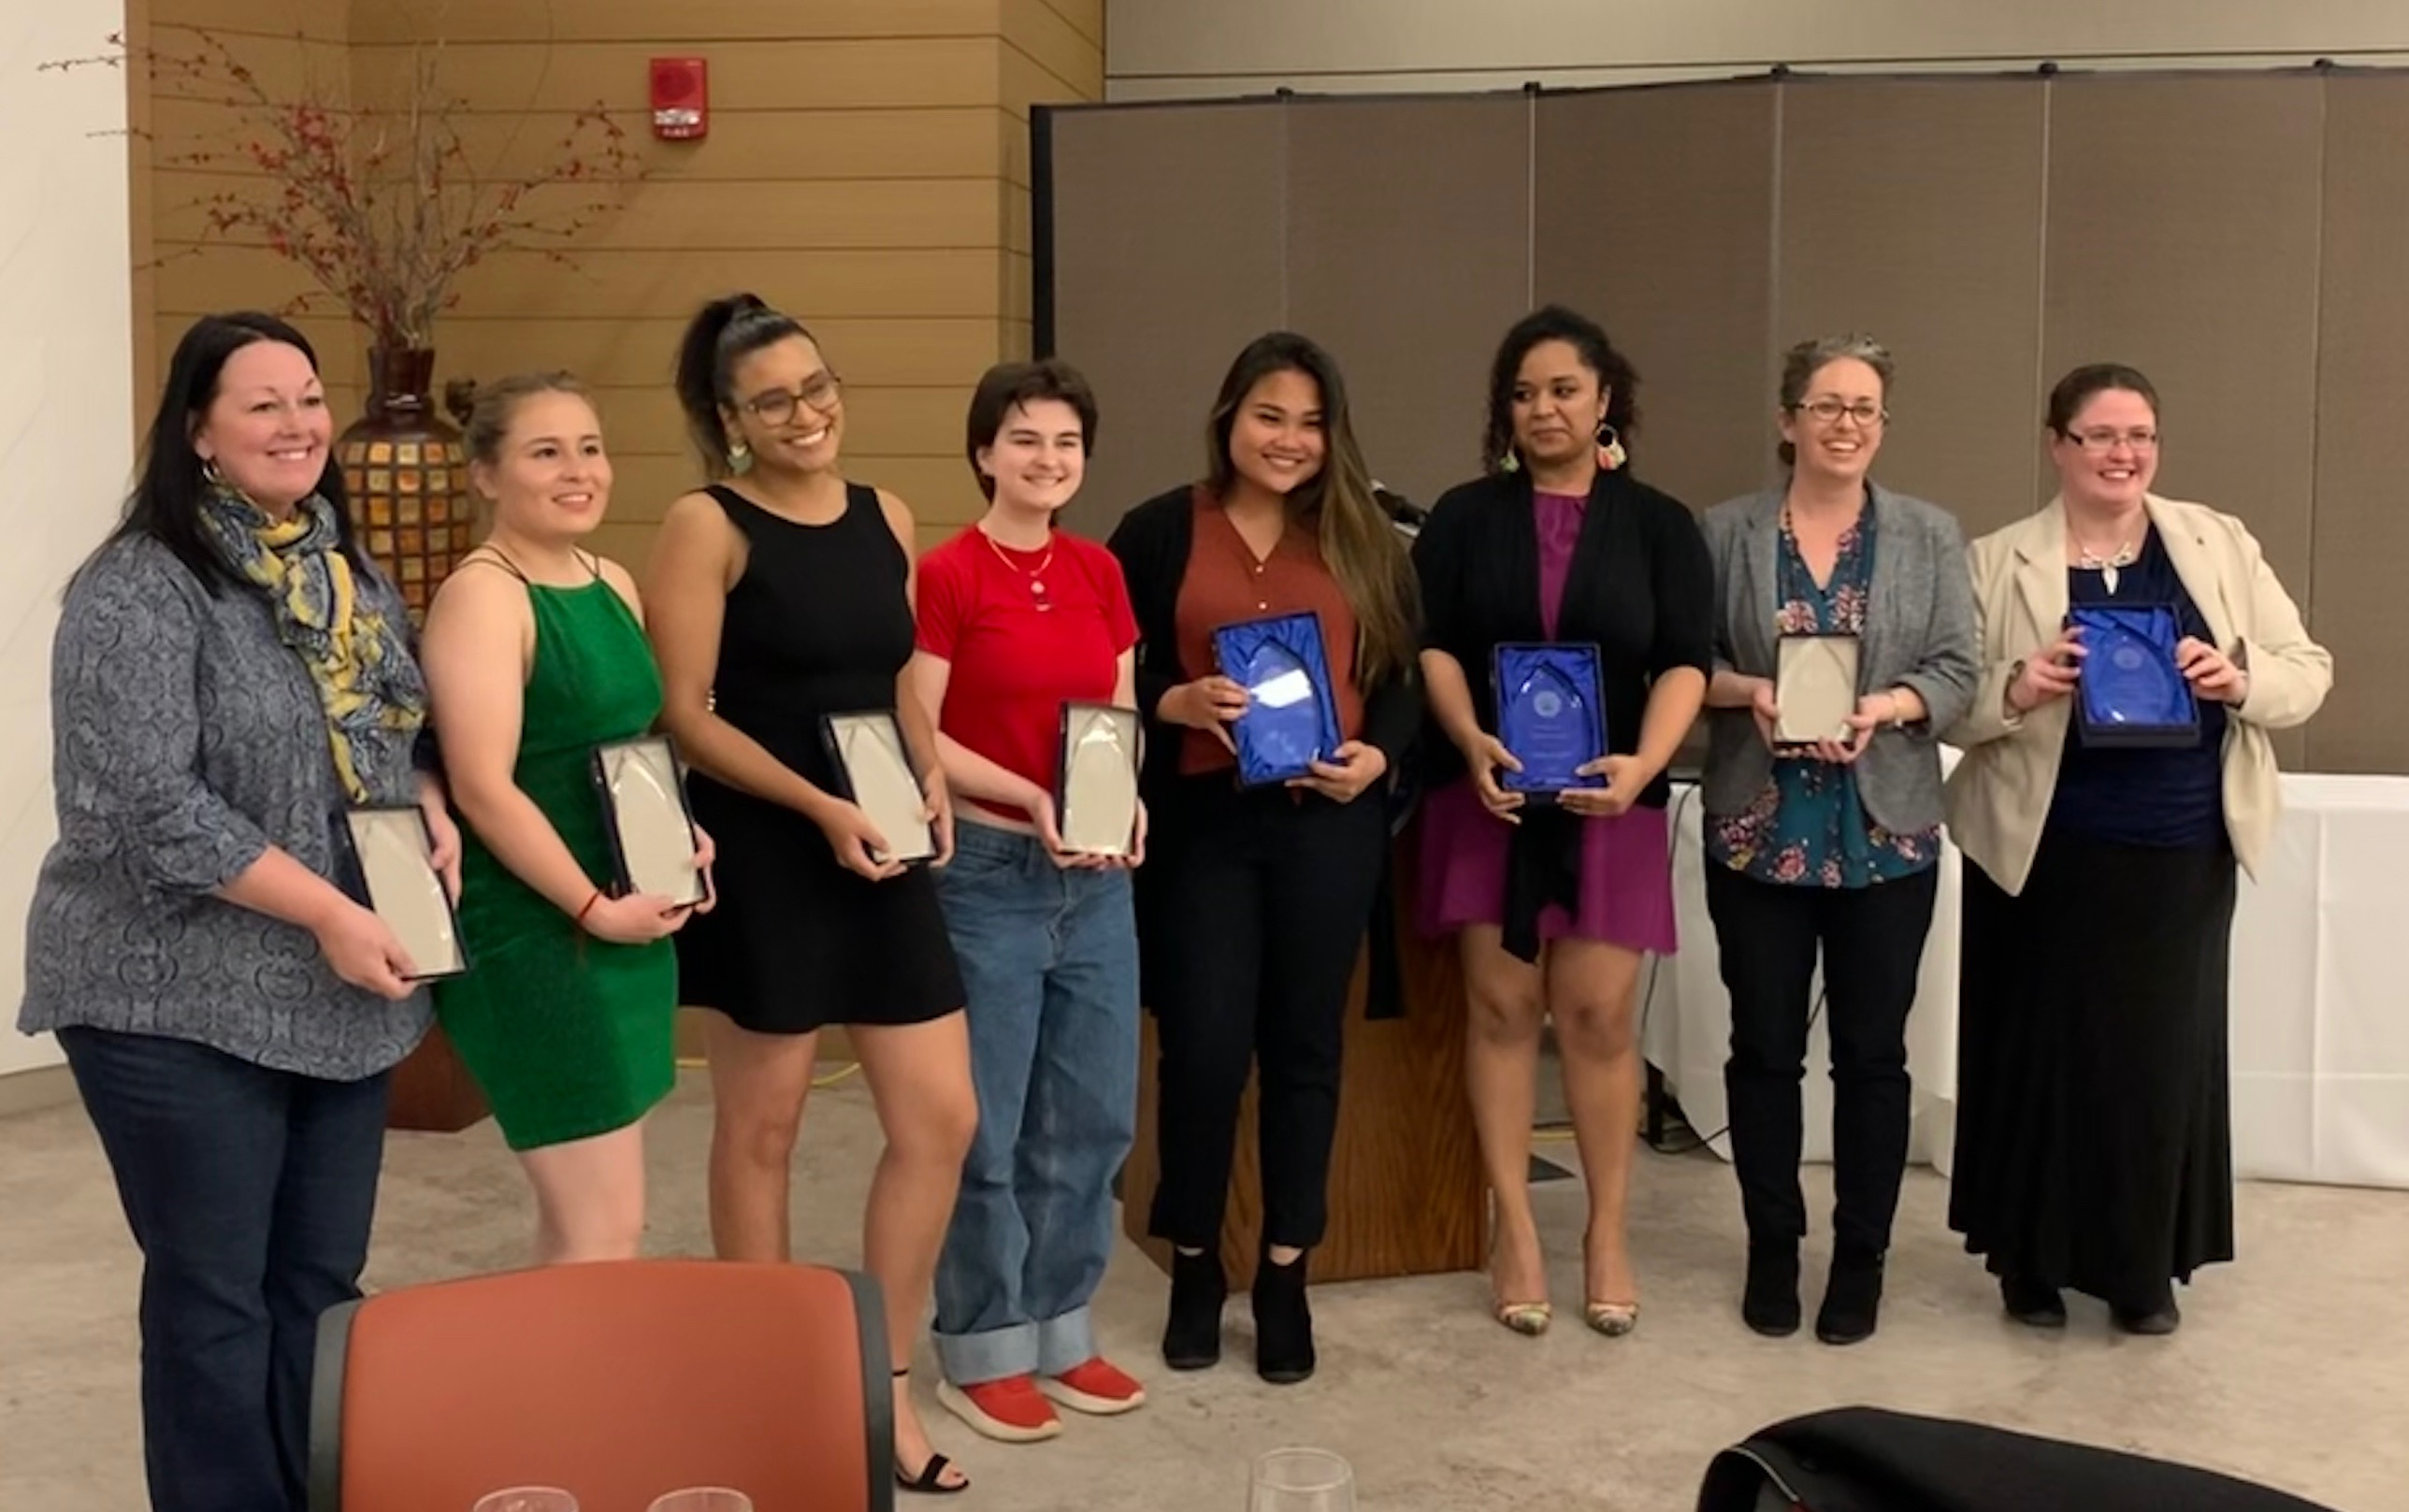 The winners of the Women of Distinction Awards for the evening posed with their plaques (Photo Maddie Neiman/The Gettysburgian).